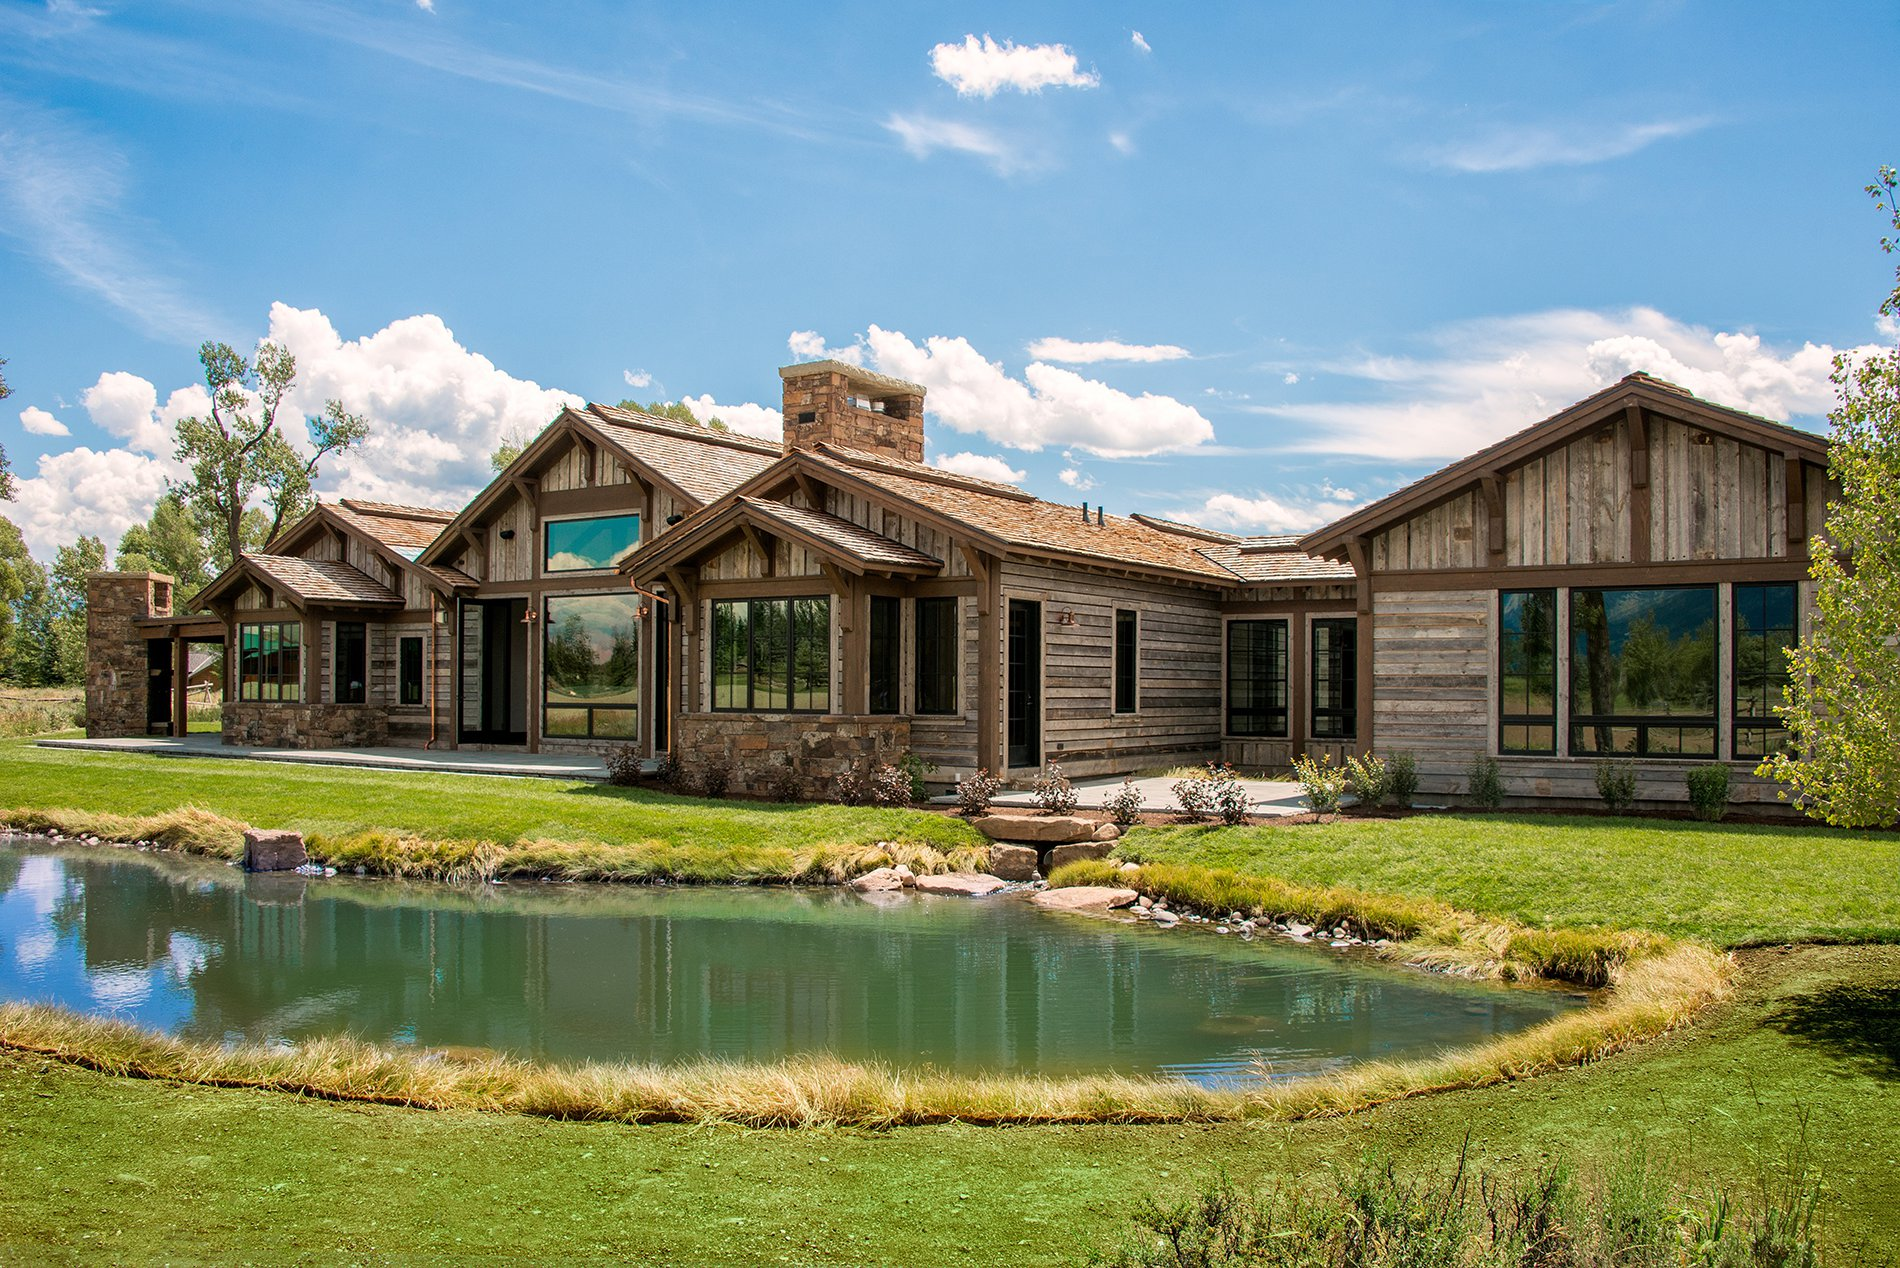 wooden home with outdoor pond